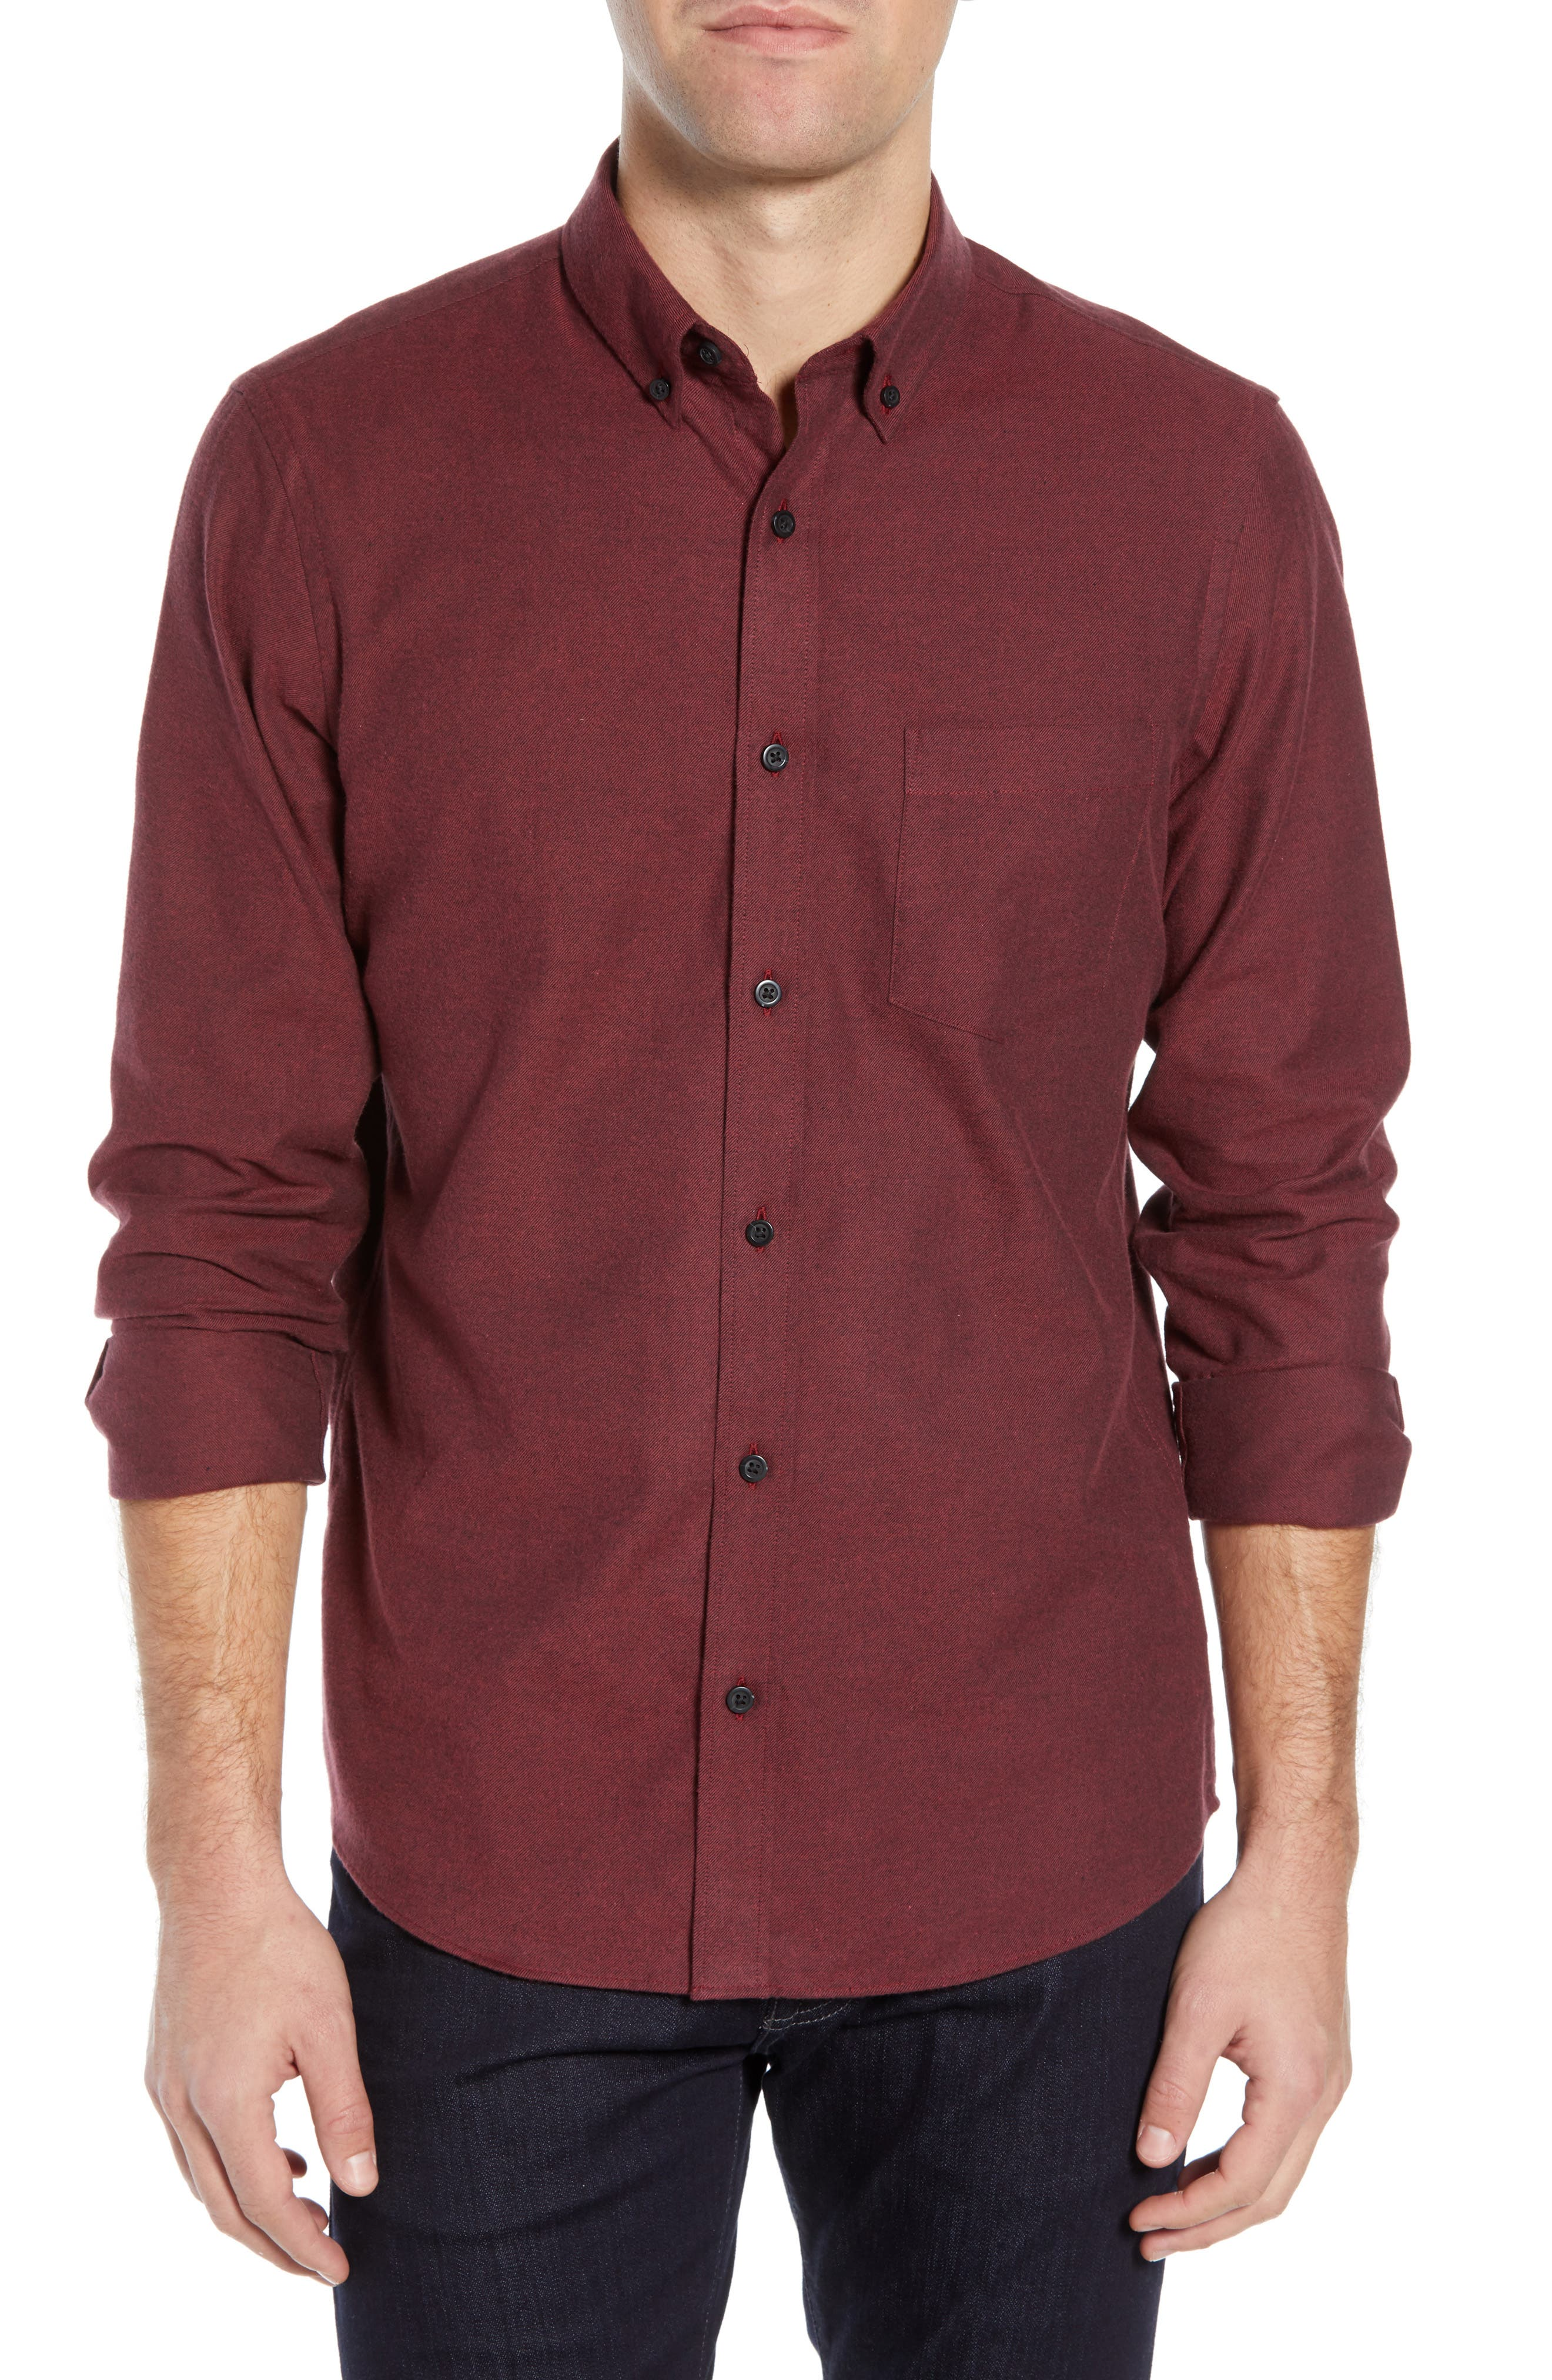 NORDSTROM MEN'S SHOP,                             Slim Fit Brushed Twill Sport Shirt,                             Main thumbnail 1, color,                             RED JESTER BRUSHED TWILL